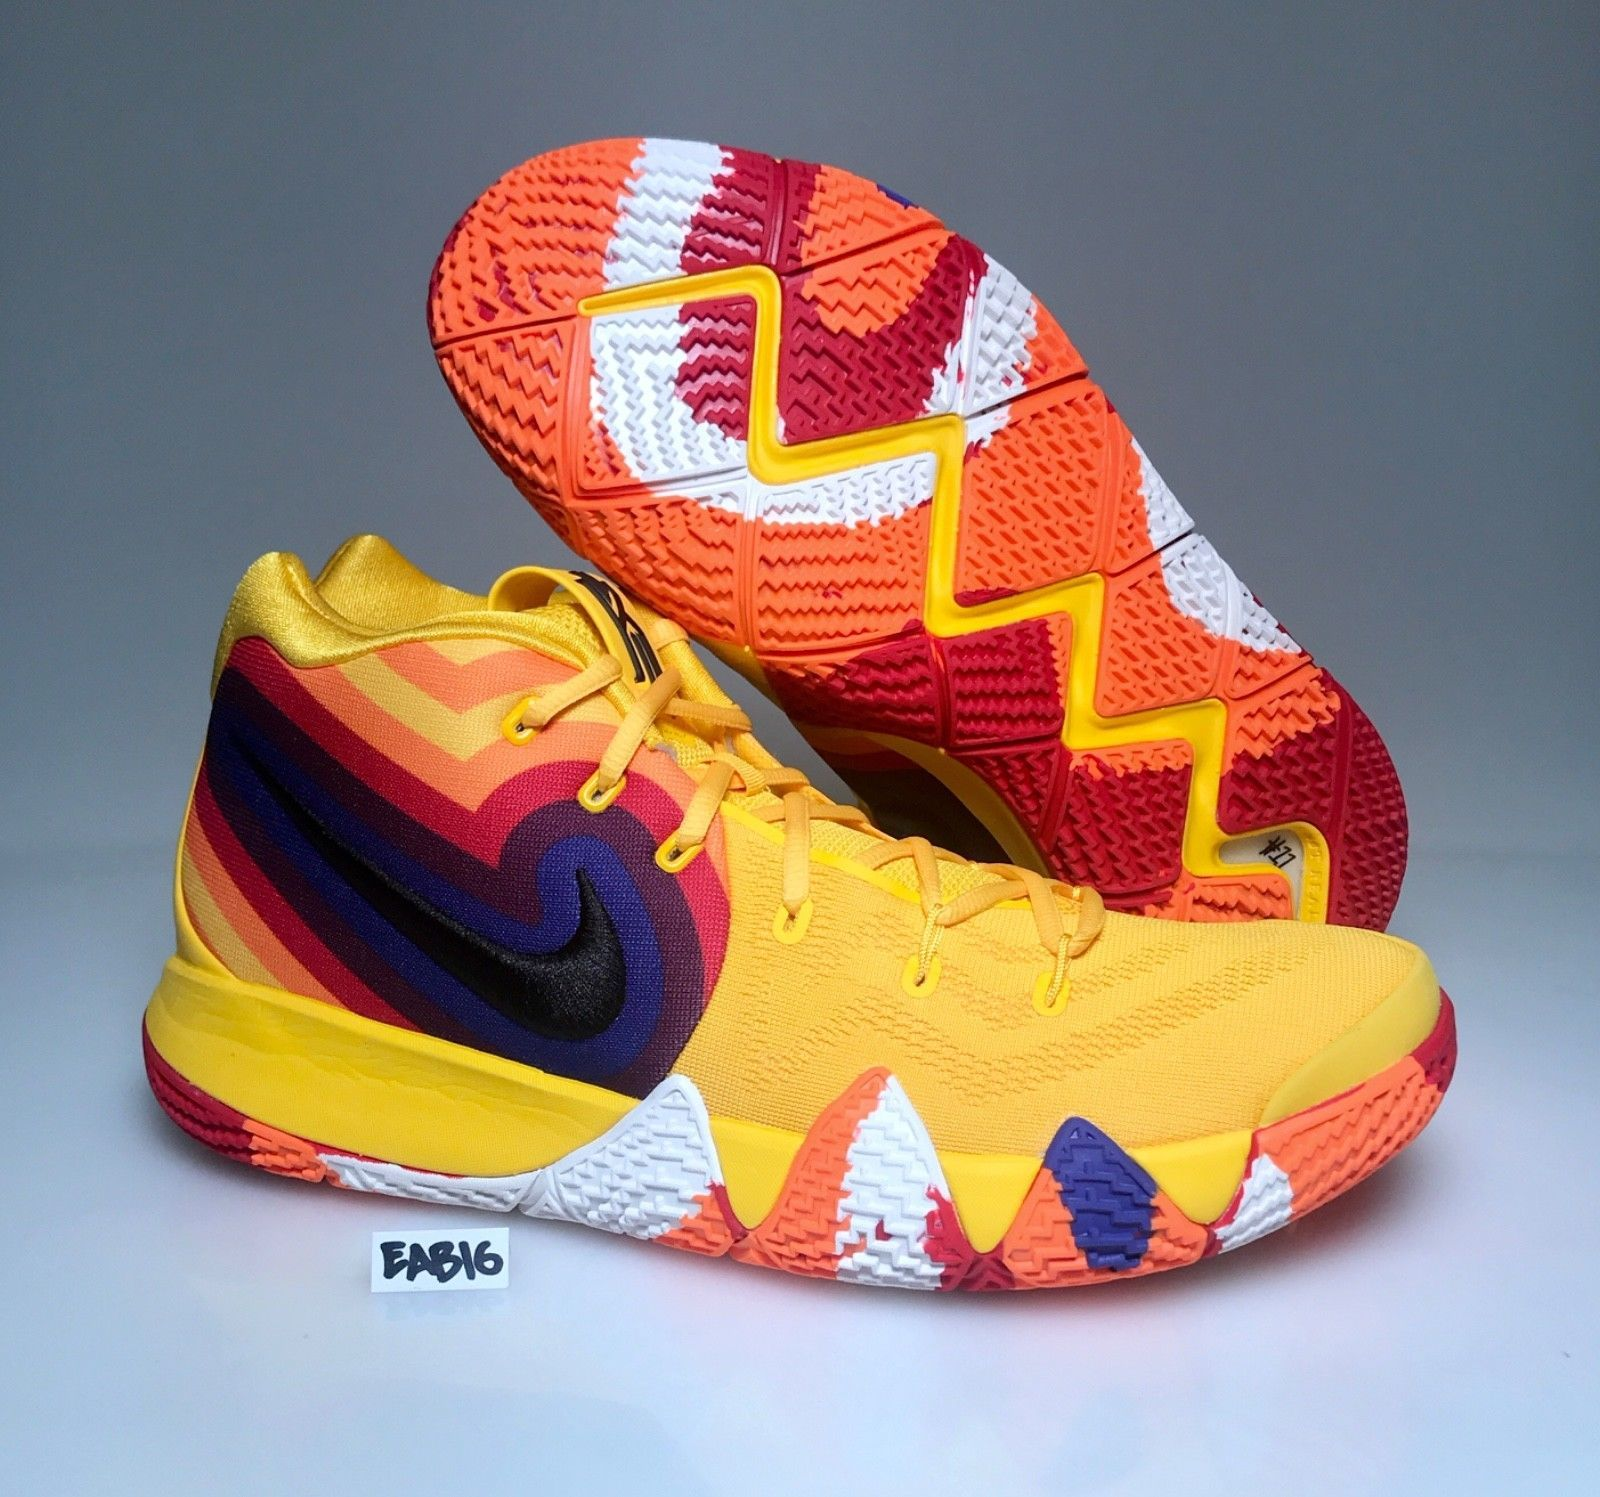 baff4d1197f1 Nike Kyrie Irving 4 70s Yellow Orange Blue 943807-700 Mens   Kids GS Uncle  Drew